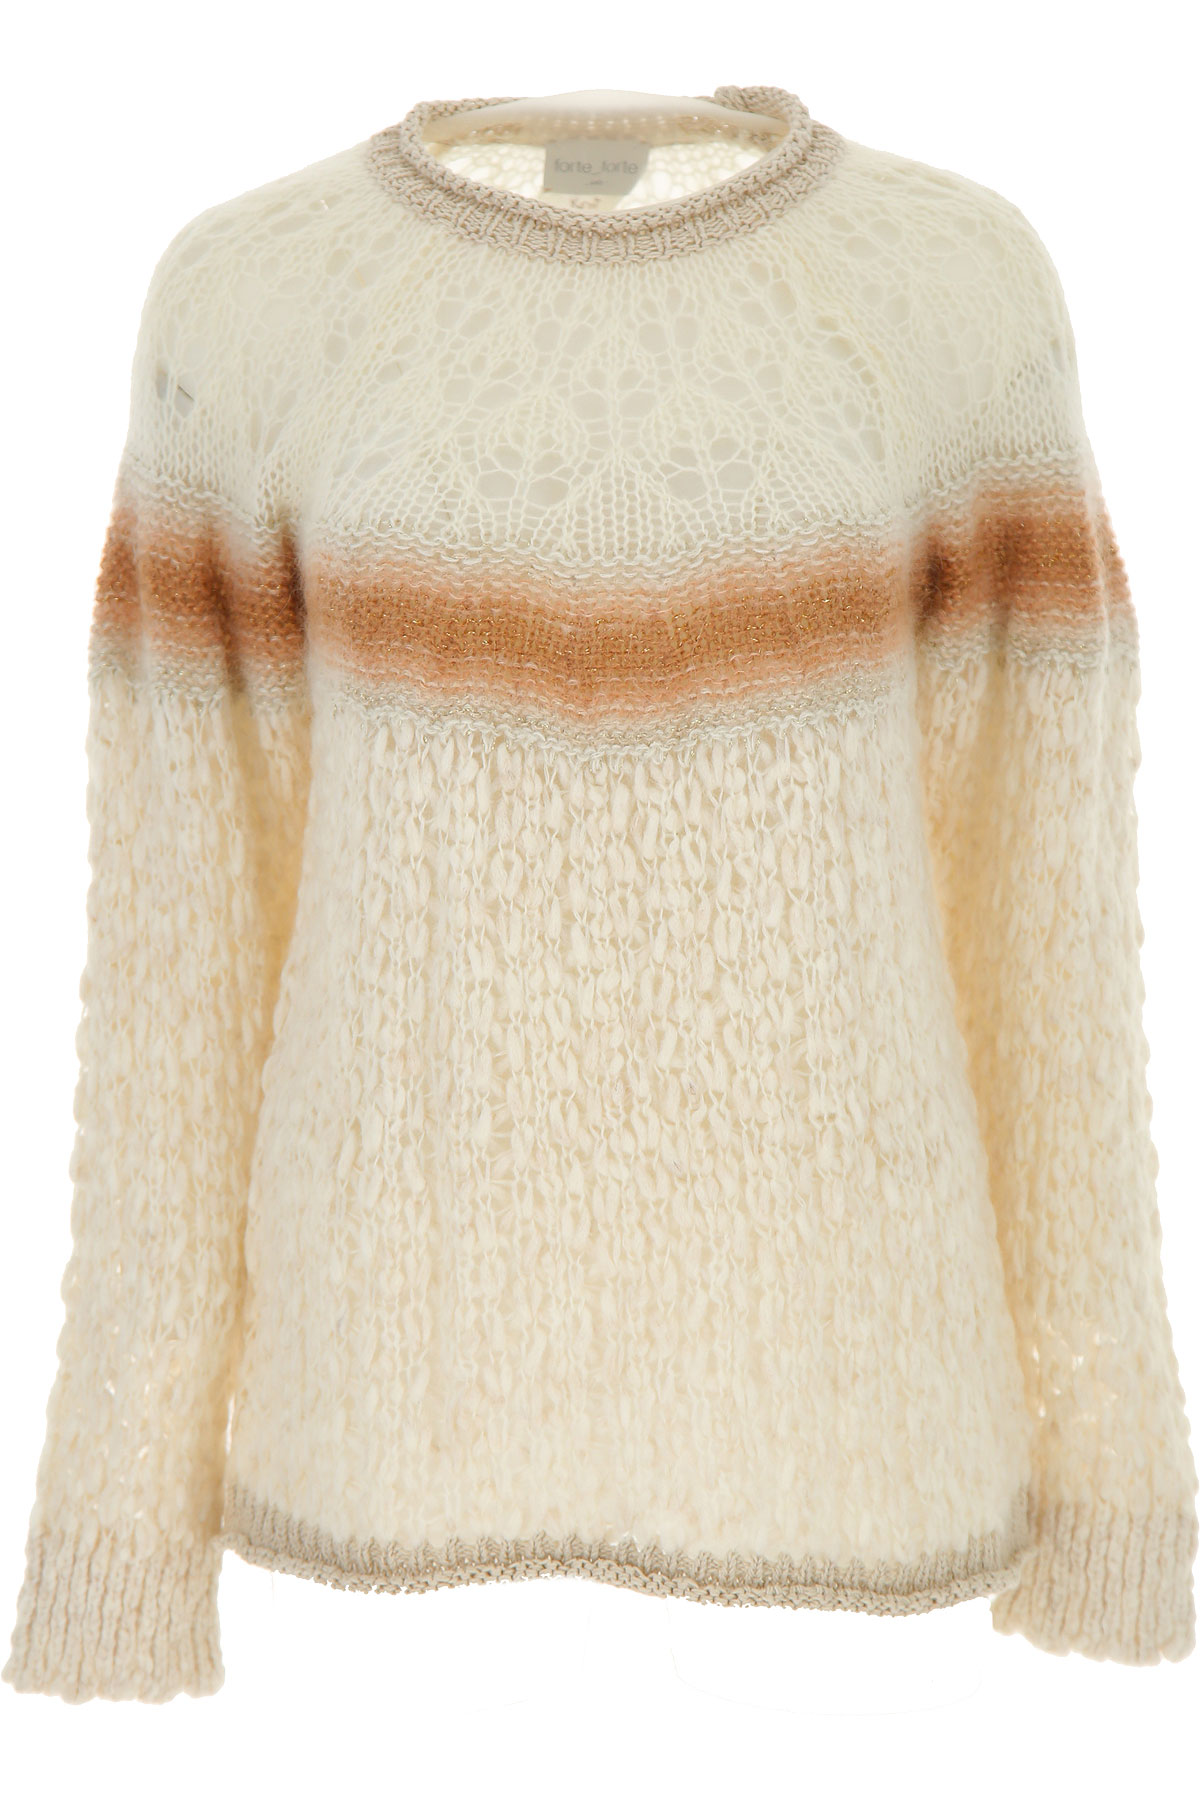 Forte Forte Sweater for Women Jumper On Sale, Natural, Mohair, 2019, 1 - S - IT 40 2 - M - IT 42